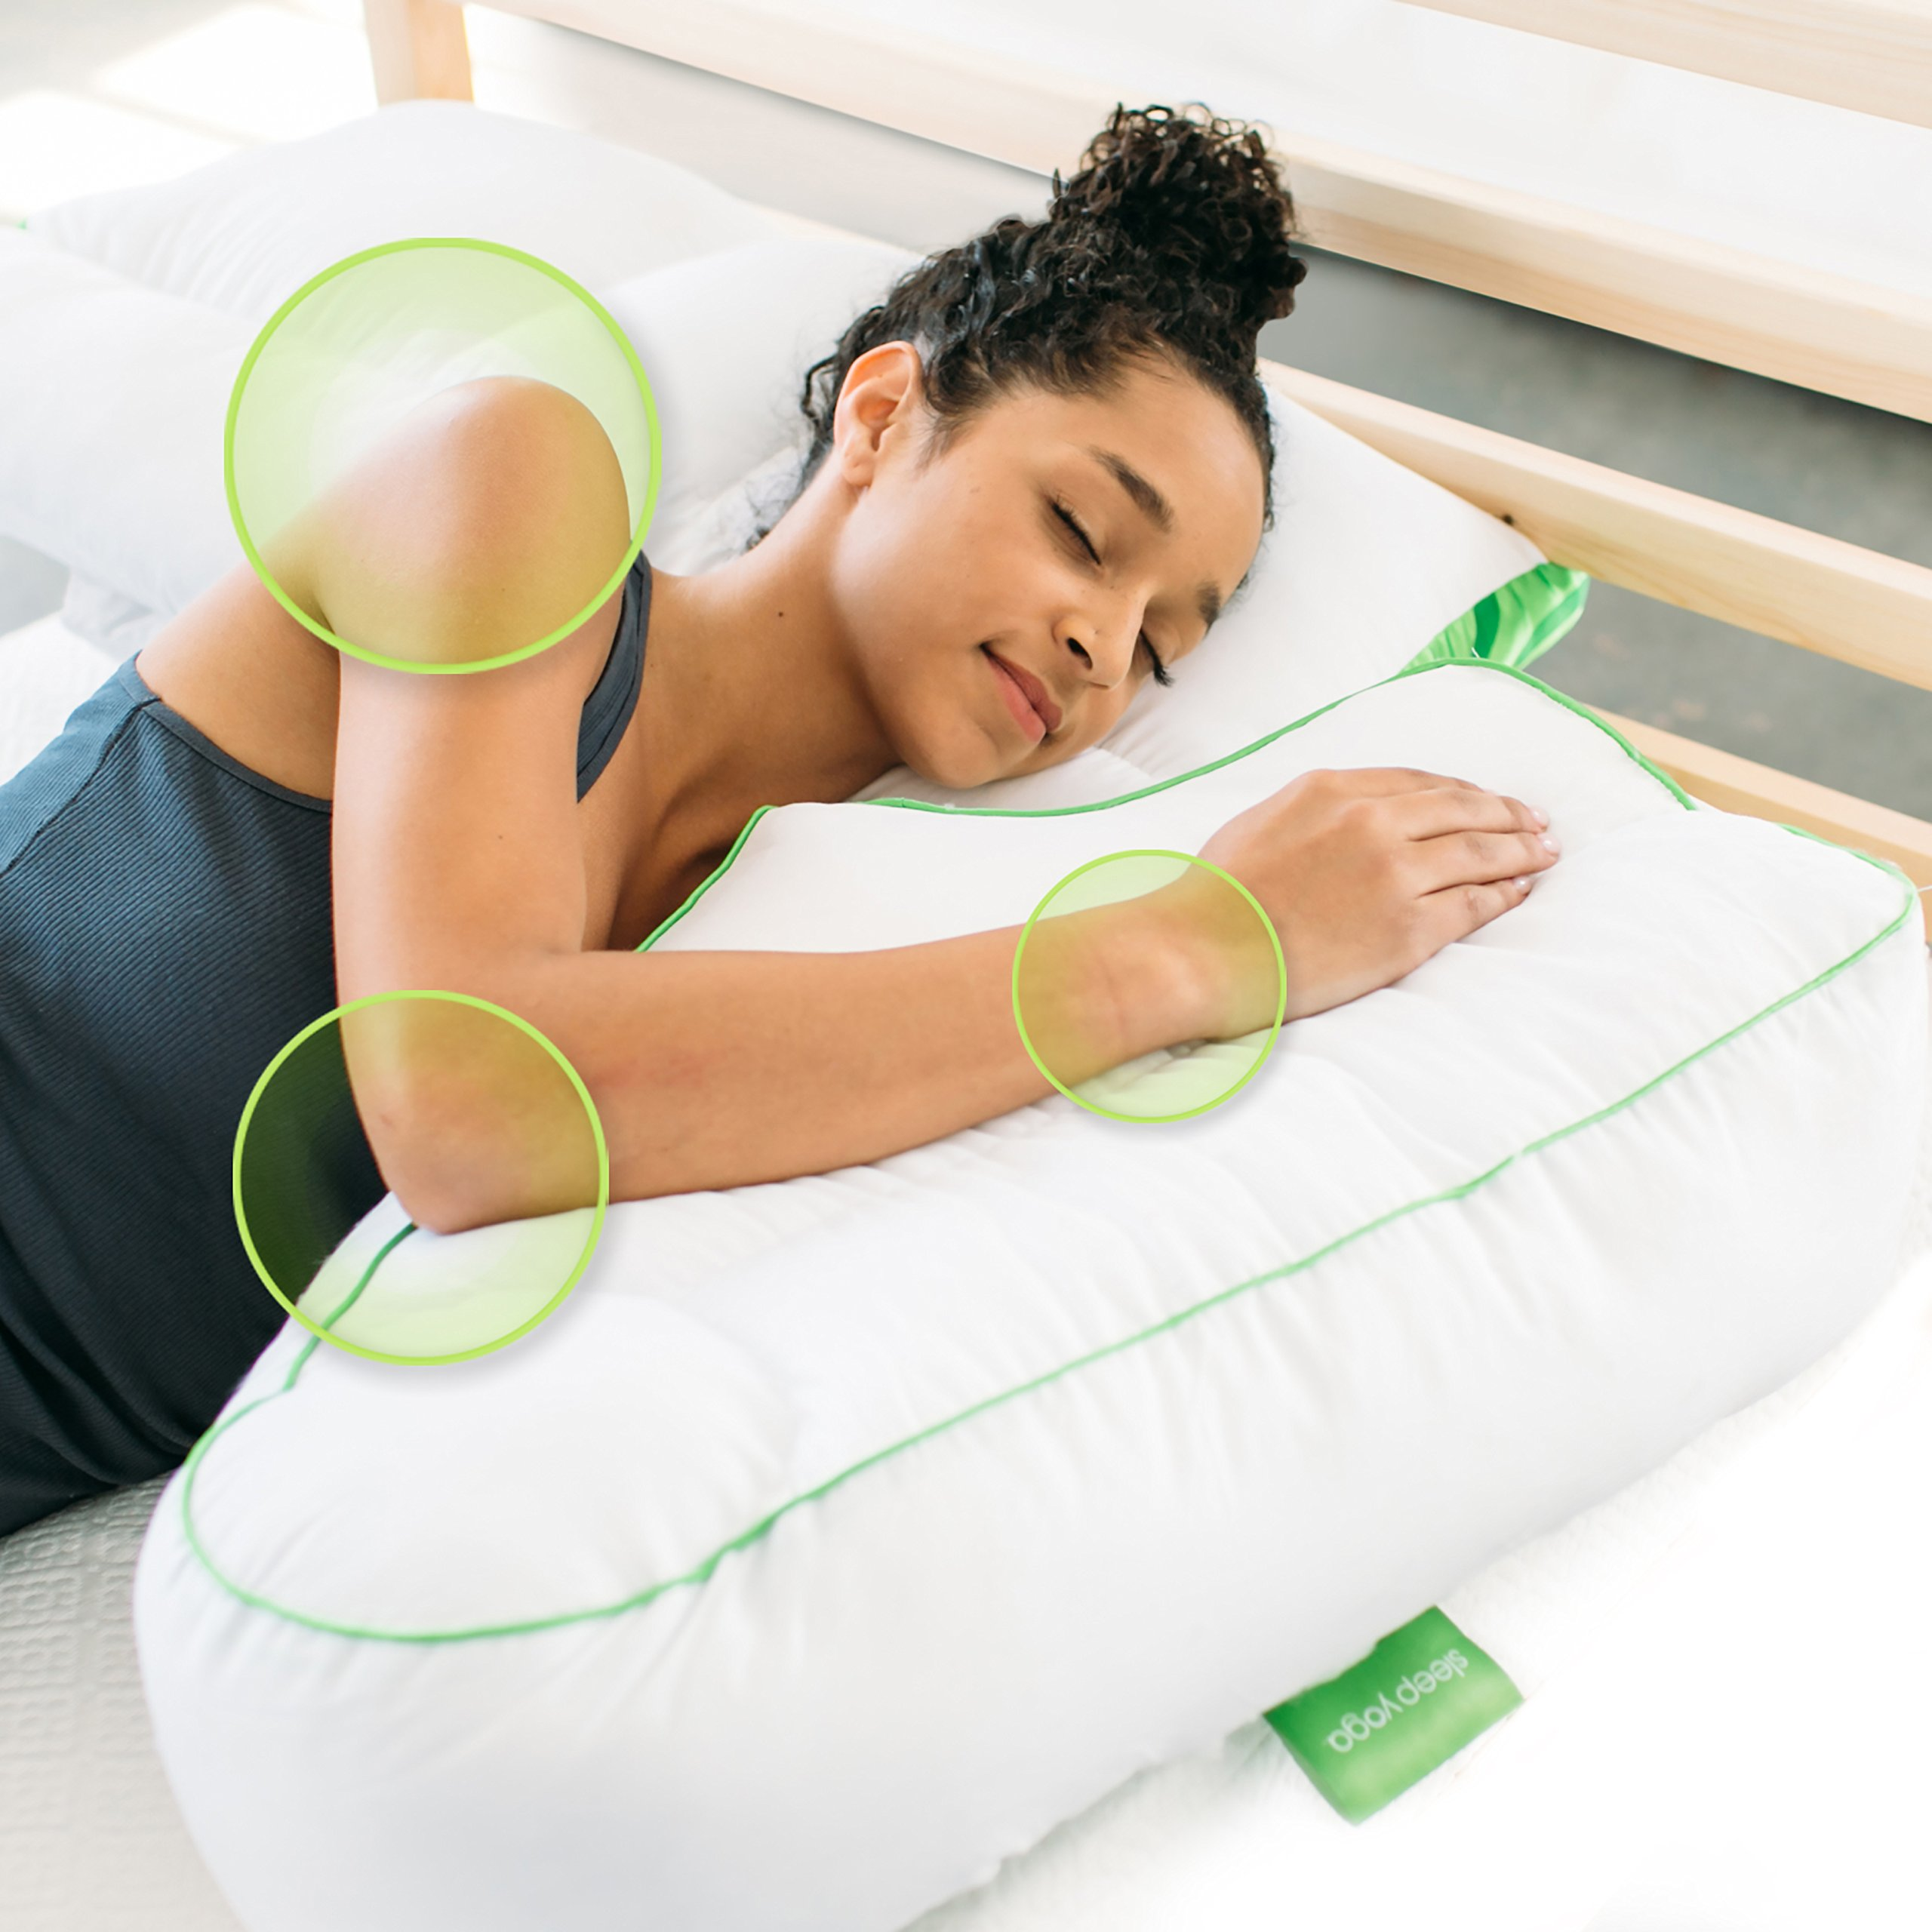 Sleep Yoga Good Beneficial Helps Strengthen Our Core Muscles and Keeps Our Body Flexible, Which, in Turn, Improves Our Posture n Side Sleeper Arm Rest Pillow with White Zipper Cover